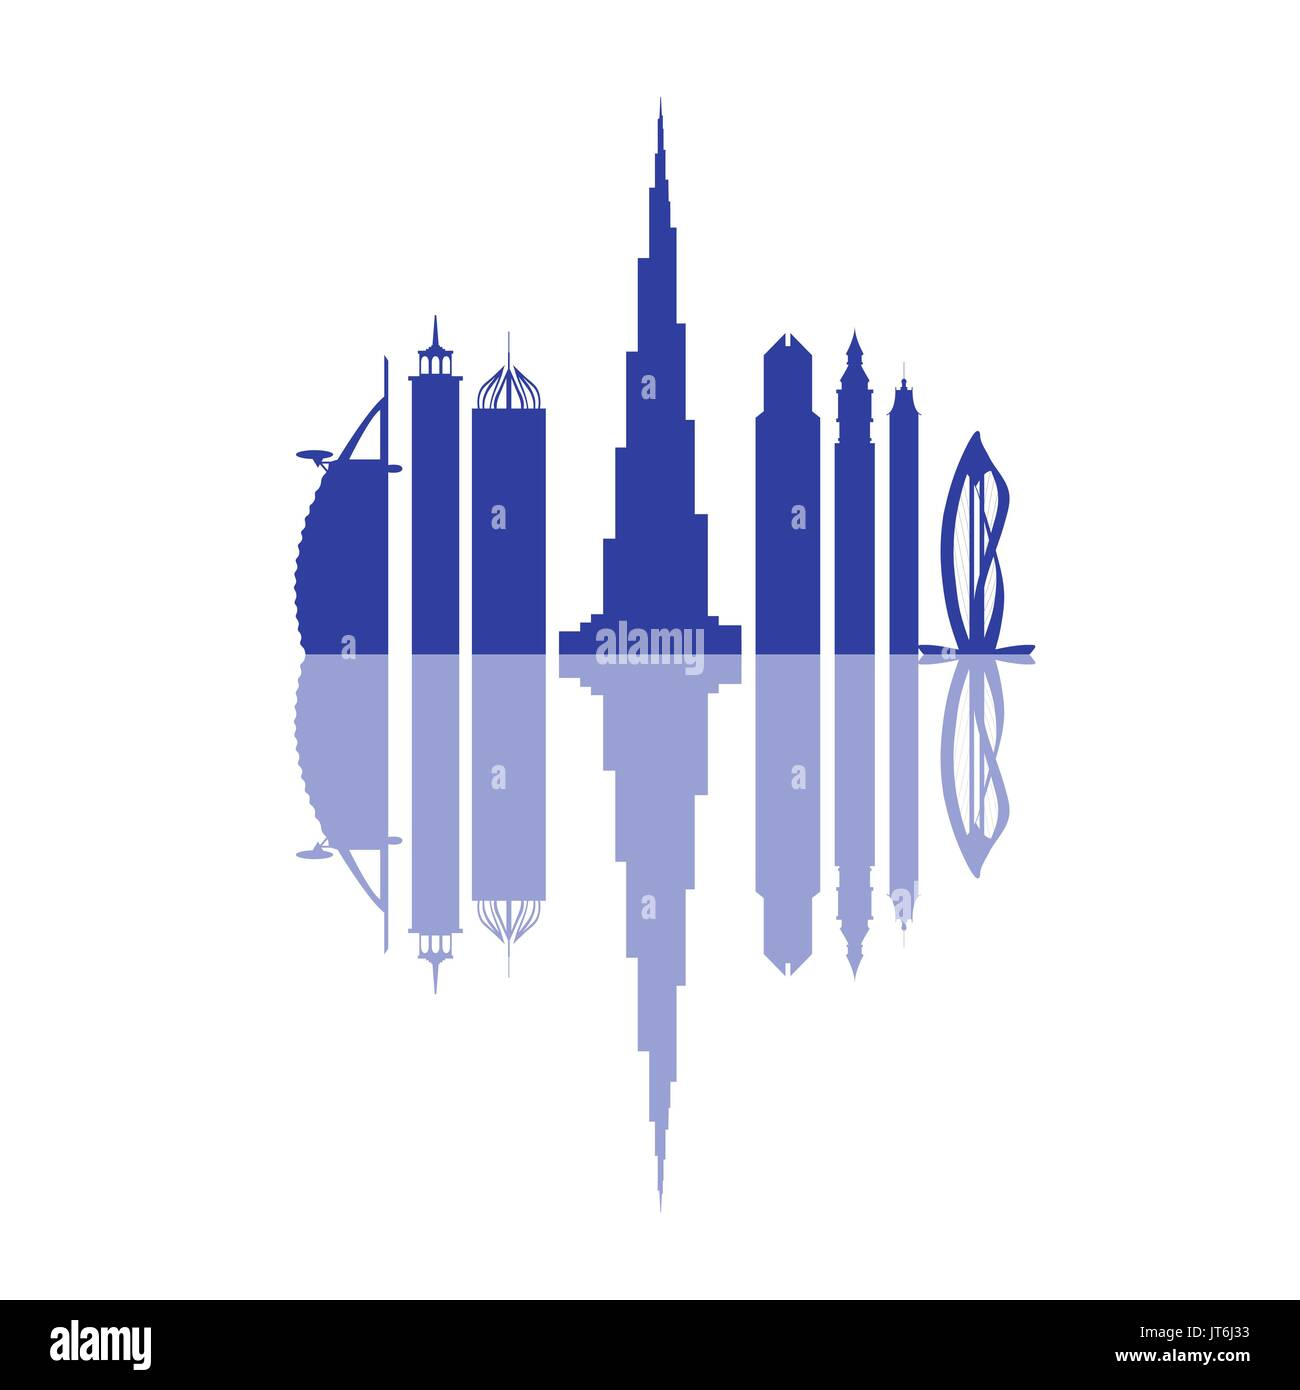 Vector illustration of United Arab Emirates skyscrapers silhouette. Dubai buildings and symbol. Design for banner, poster or print. - Stock Image